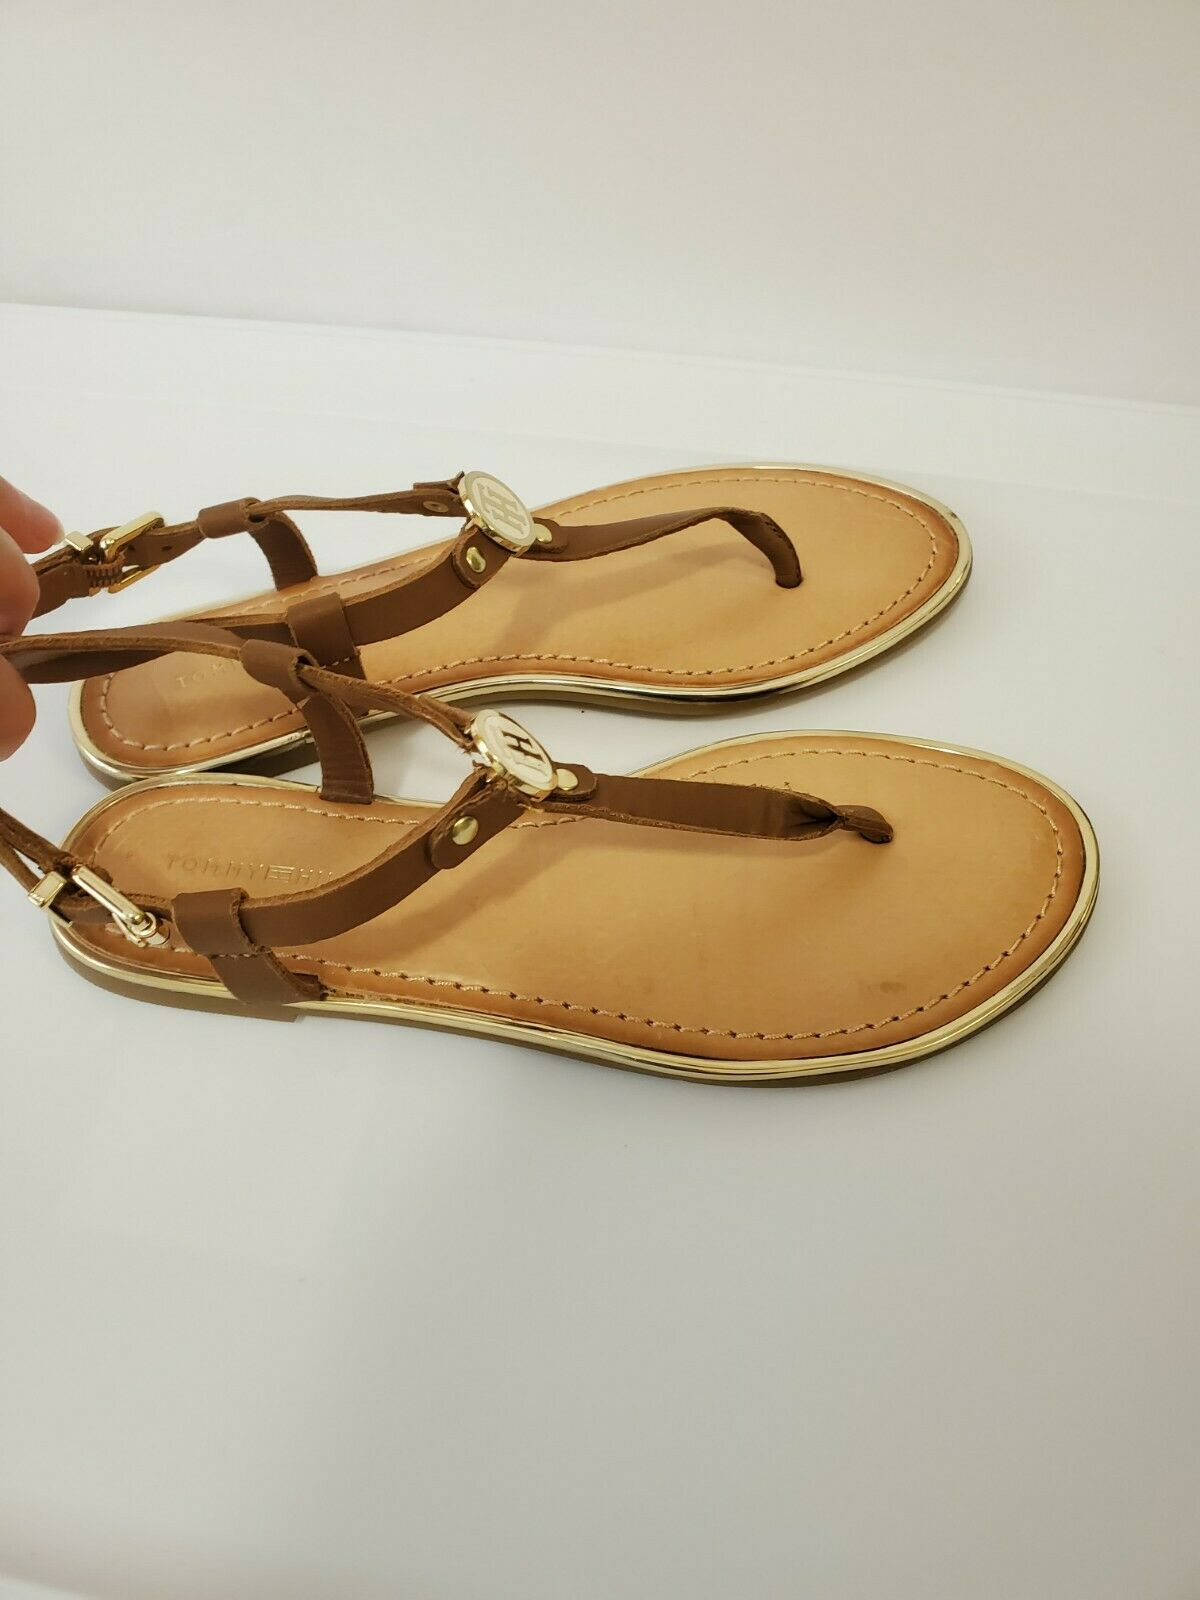 Tommy hilfiger women Brown Leather Sandals  - image 7